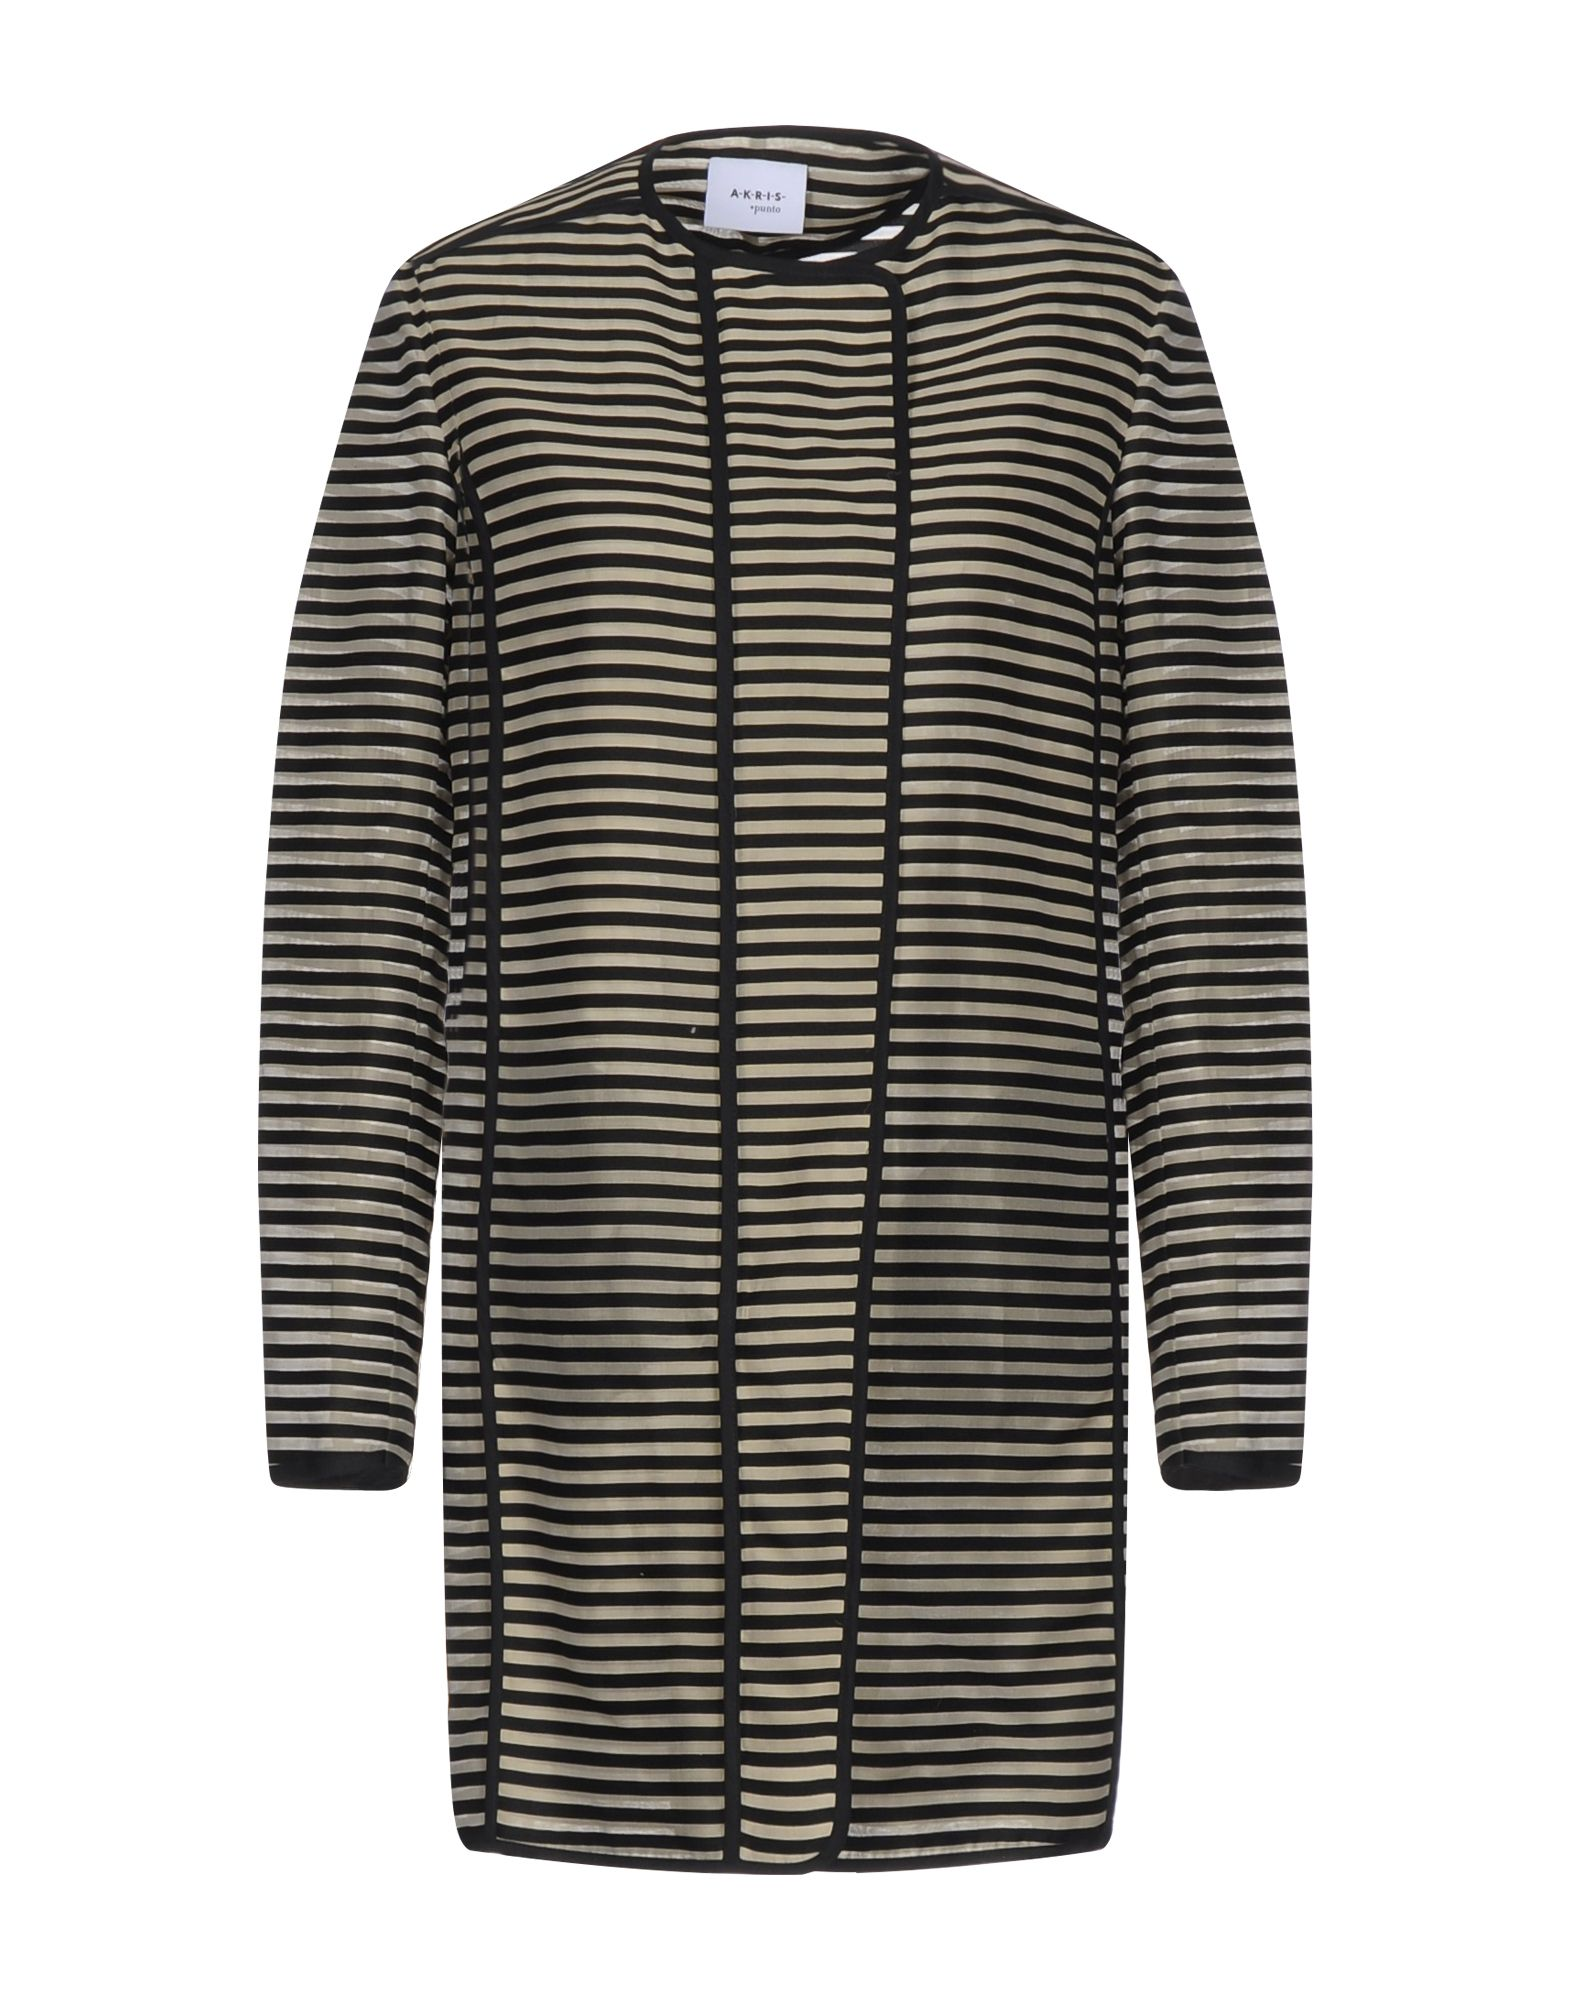 AKRIS PUNTO Overcoats. plain weave, no appliqués, stripes, round collar, single-breasted, frogs, no pockets, long sleeves, unlined, outerwear. 74% Cotton, 26% Silk